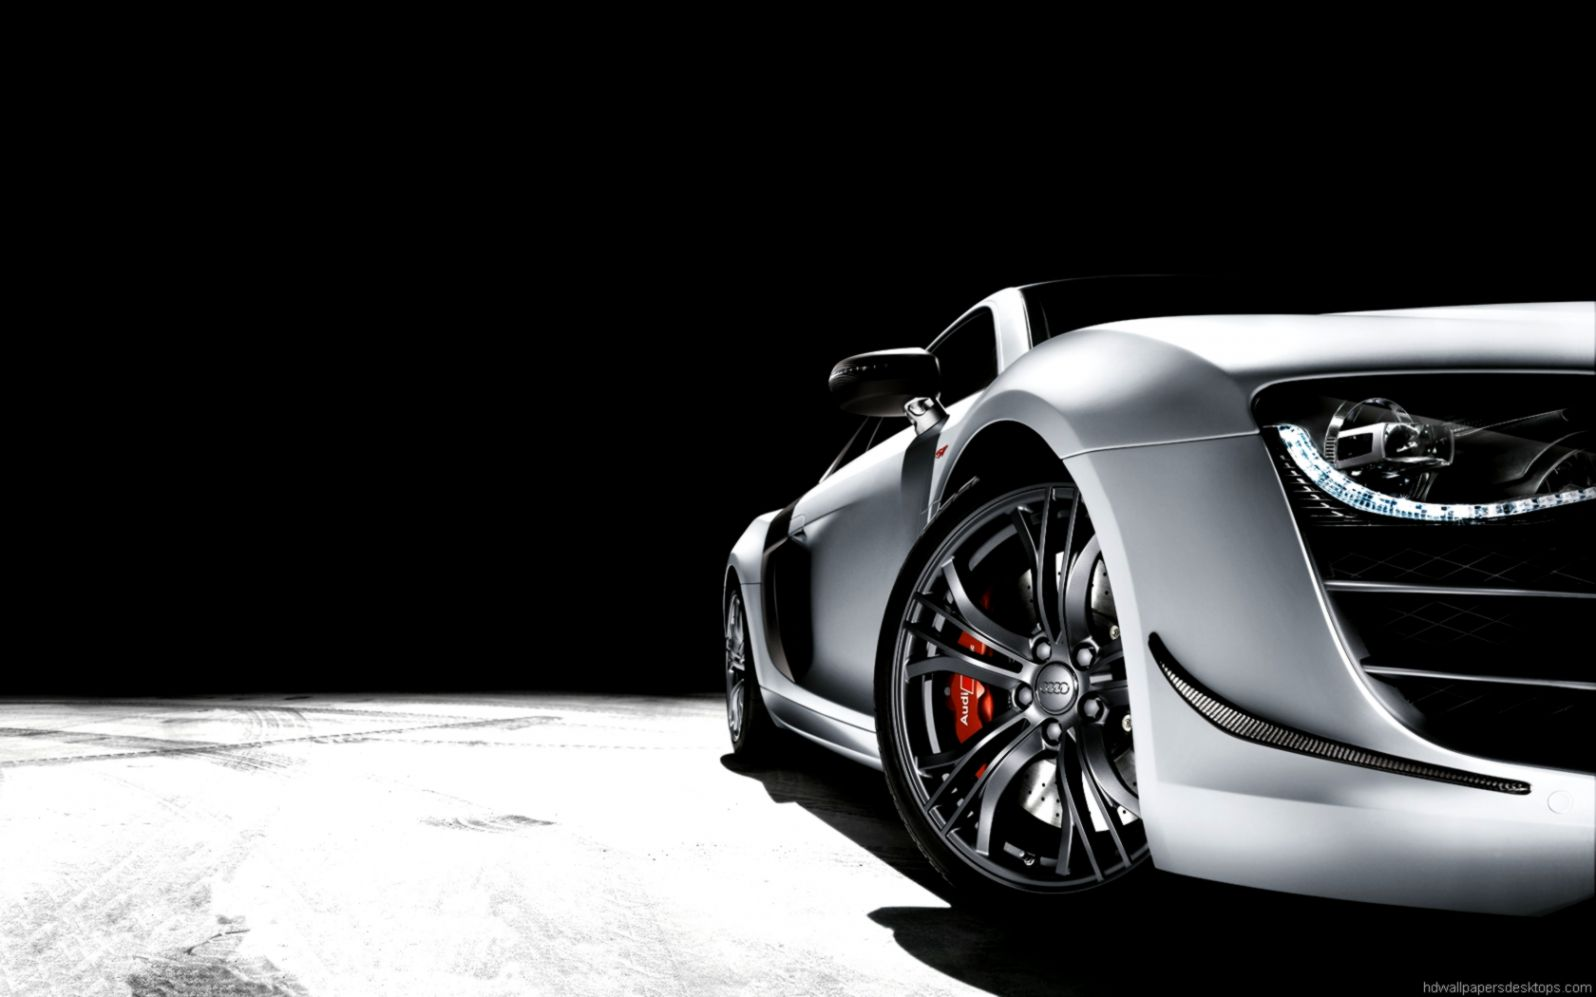 Cars Wallpaper Hd 1080p Best Wallpapers Hd Collection